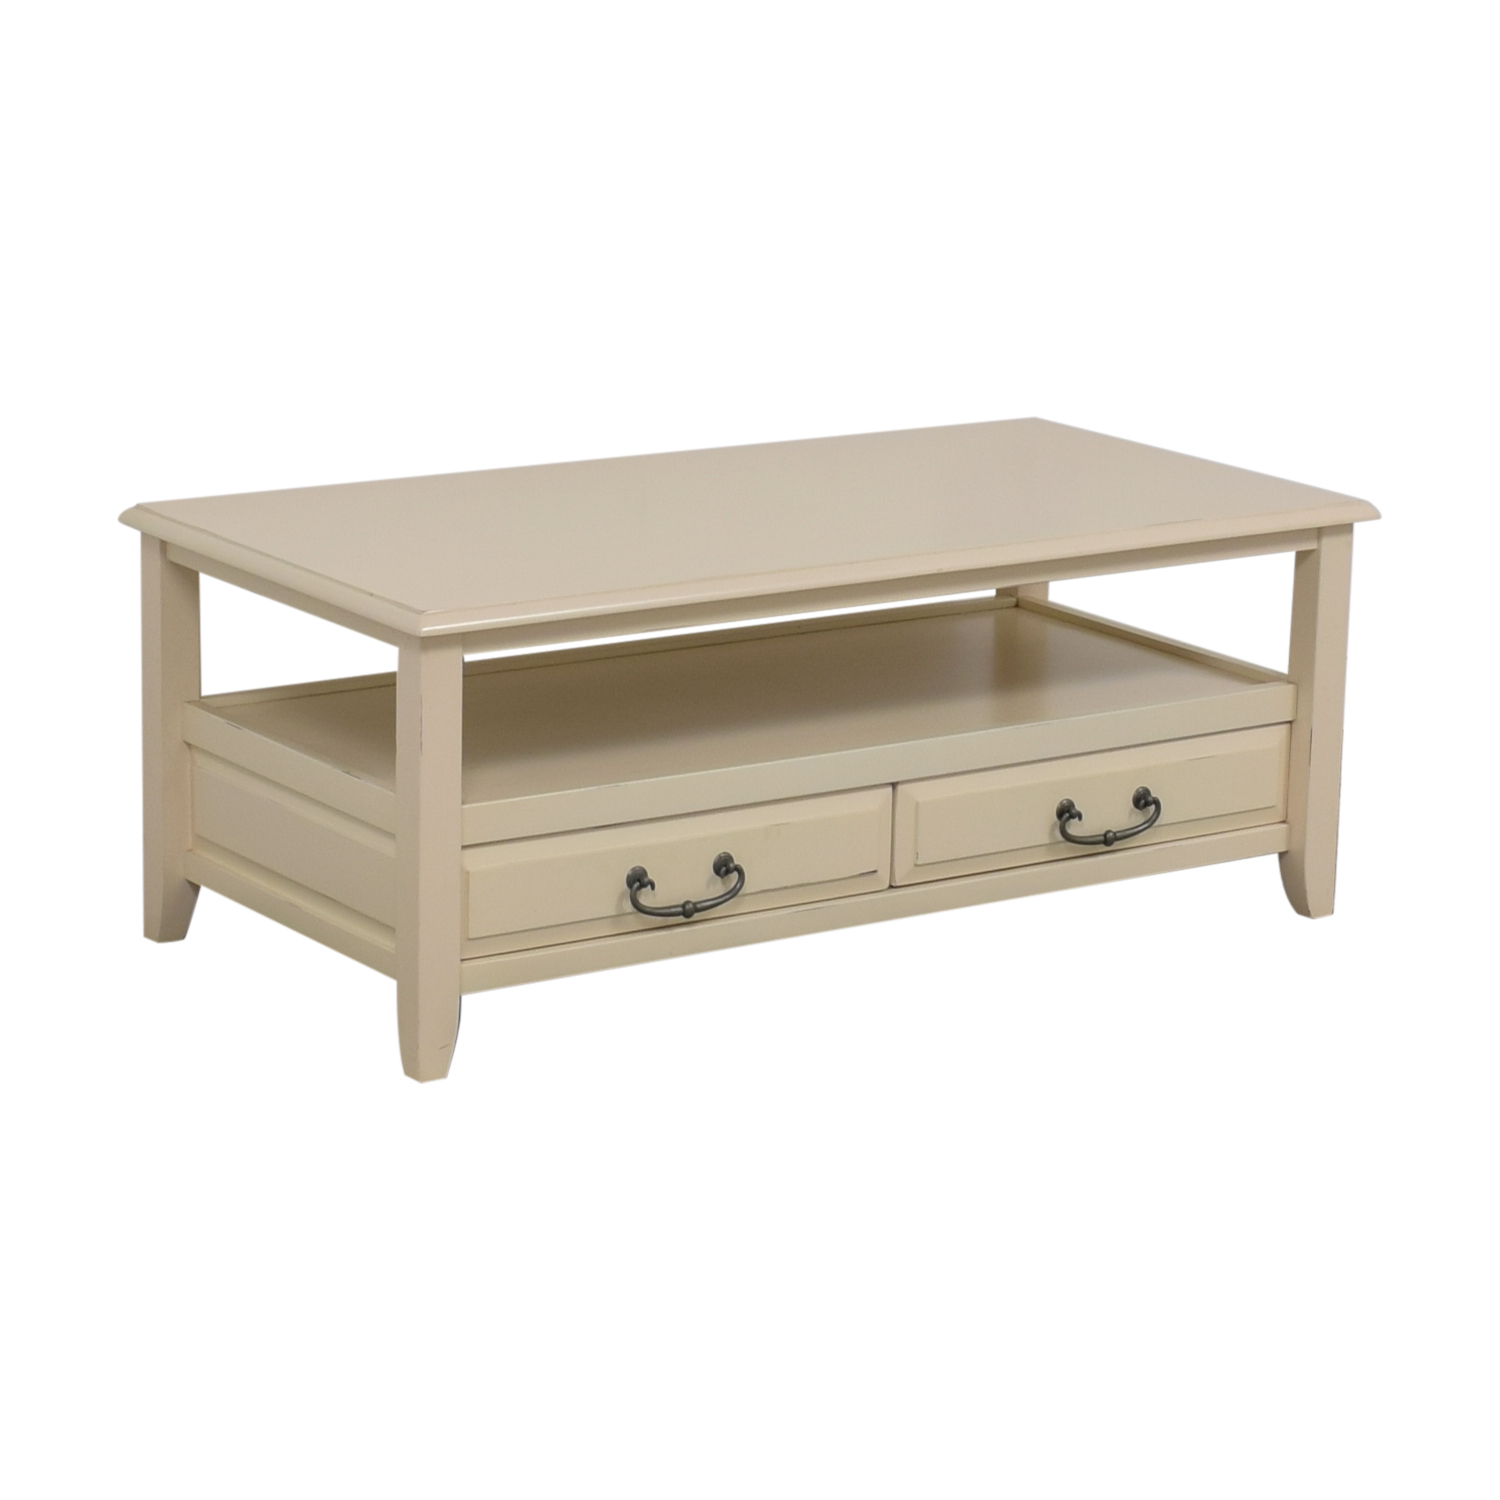 70 off pier 1 imports pier 1 imports white two drawer coffee table tables. Black Bedroom Furniture Sets. Home Design Ideas